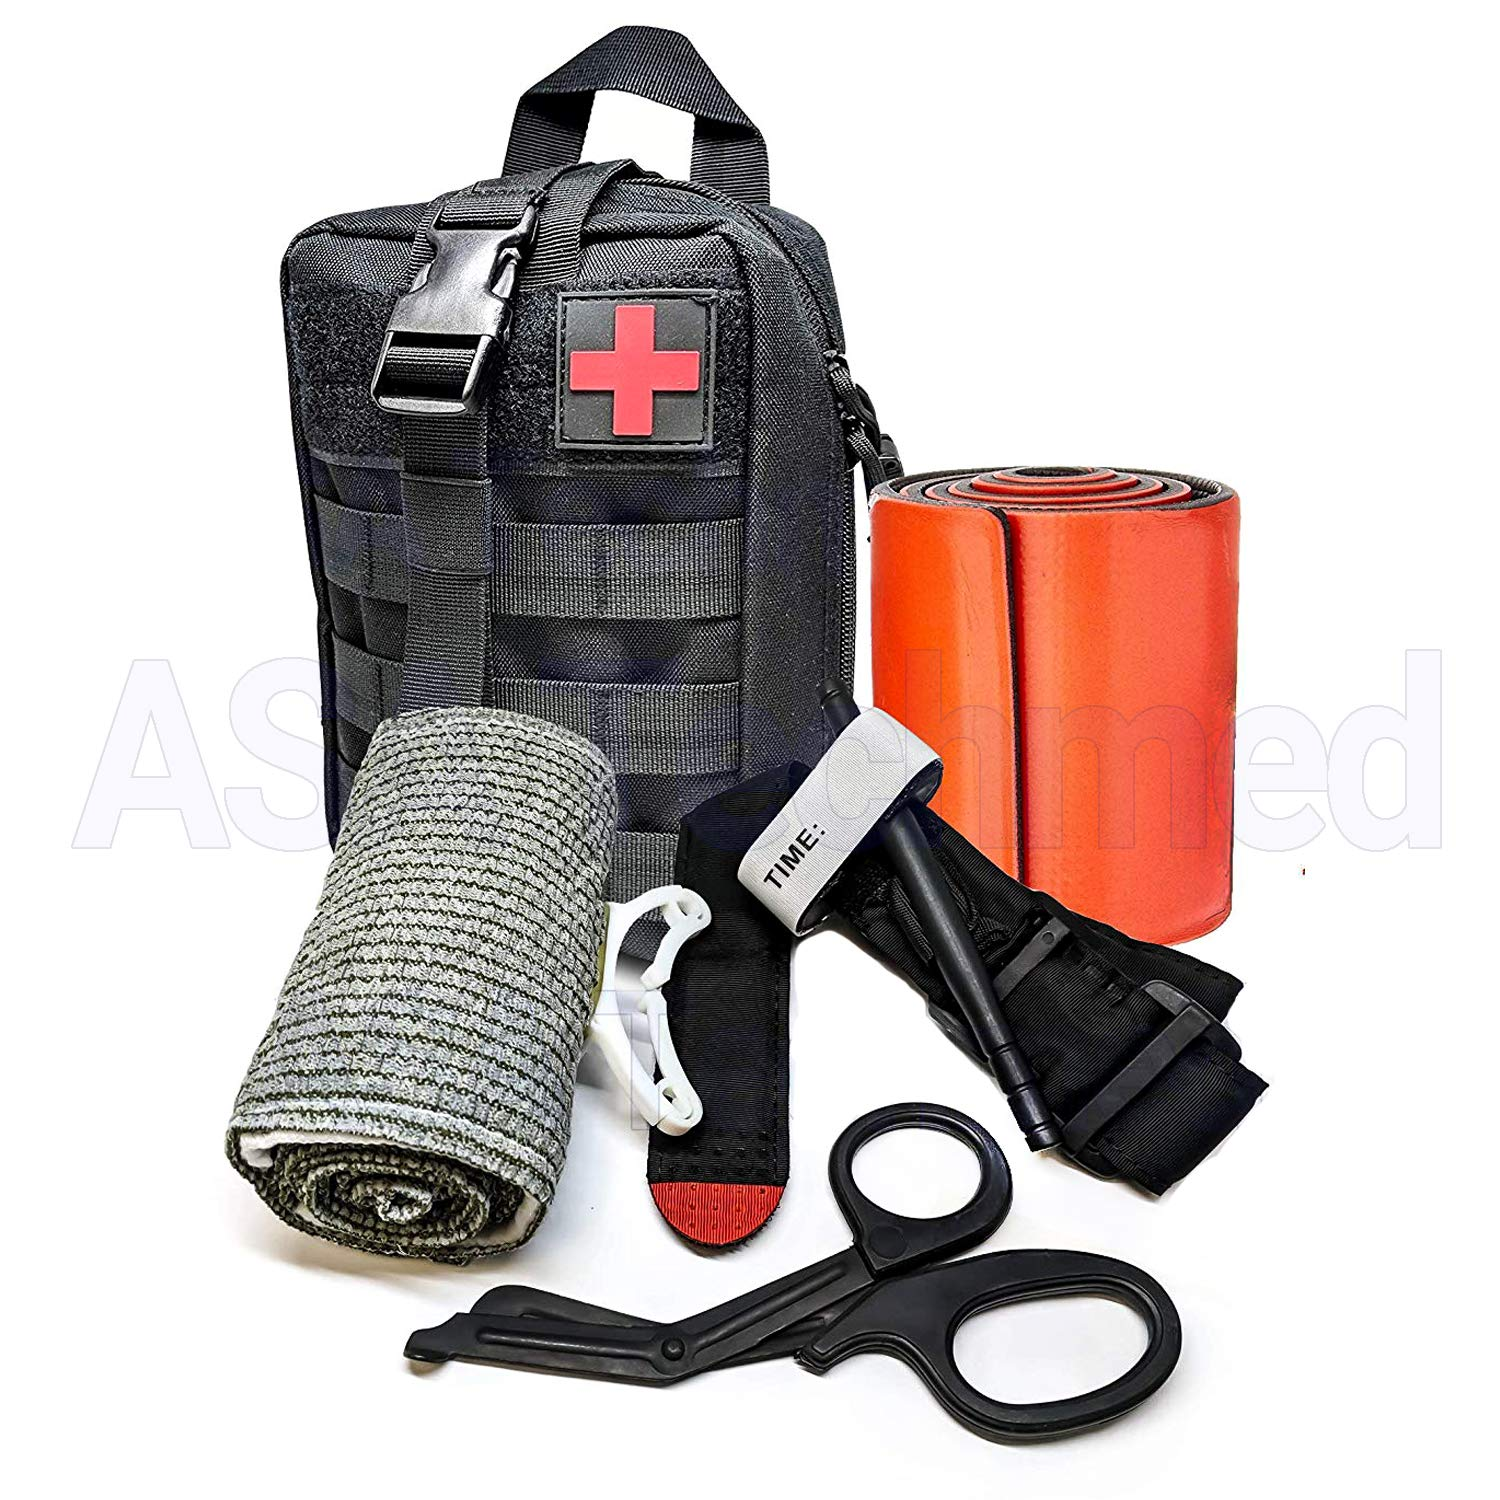 Tactical Medical Survival Tool Kit - Combat Tourniquet - Israeli Compression Bandage - Roll Up Splint - MOLLE System - IFAK - Trauma Kit - Ideal Kit for Military, EMT, Police, Firefighter and Hunting ASATechmed